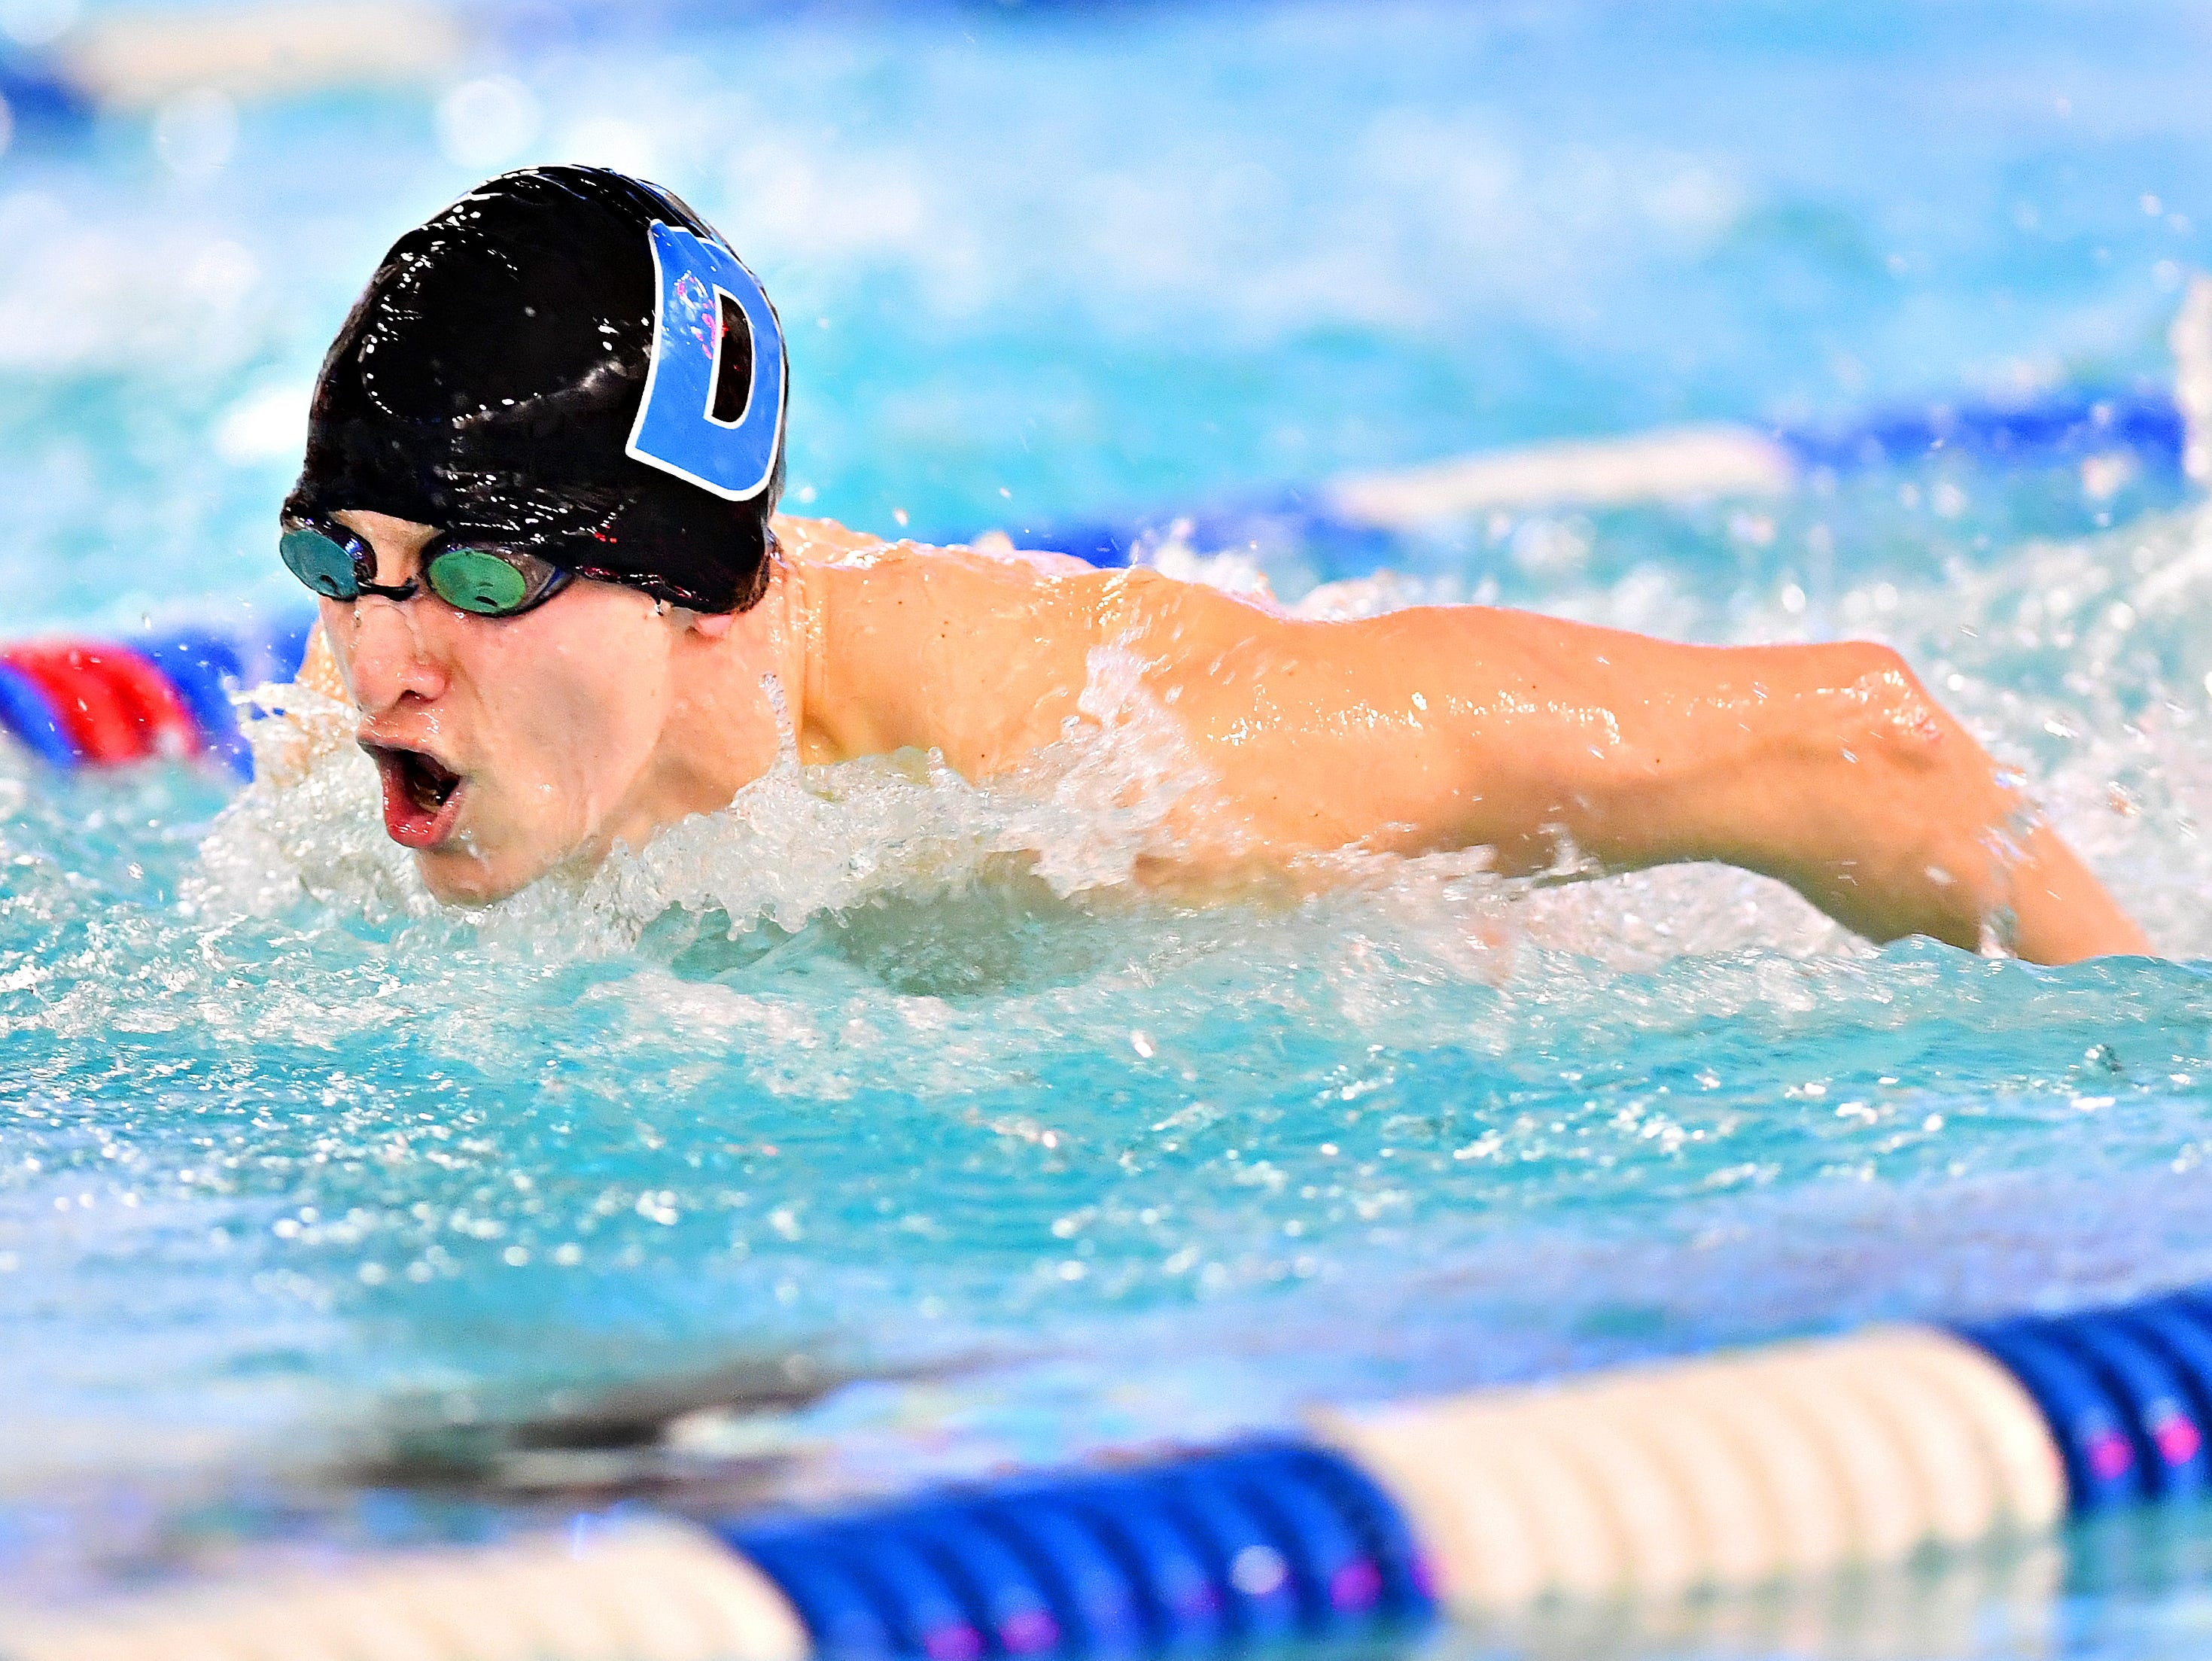 Dallastown's Joel Dunnigan competes in the 100 Yard Butterfly event during swimming action against Central York at Dallastown Area High School in York Township, Thursday, Jan. 10, 2019. Dawn J. Sagert photo